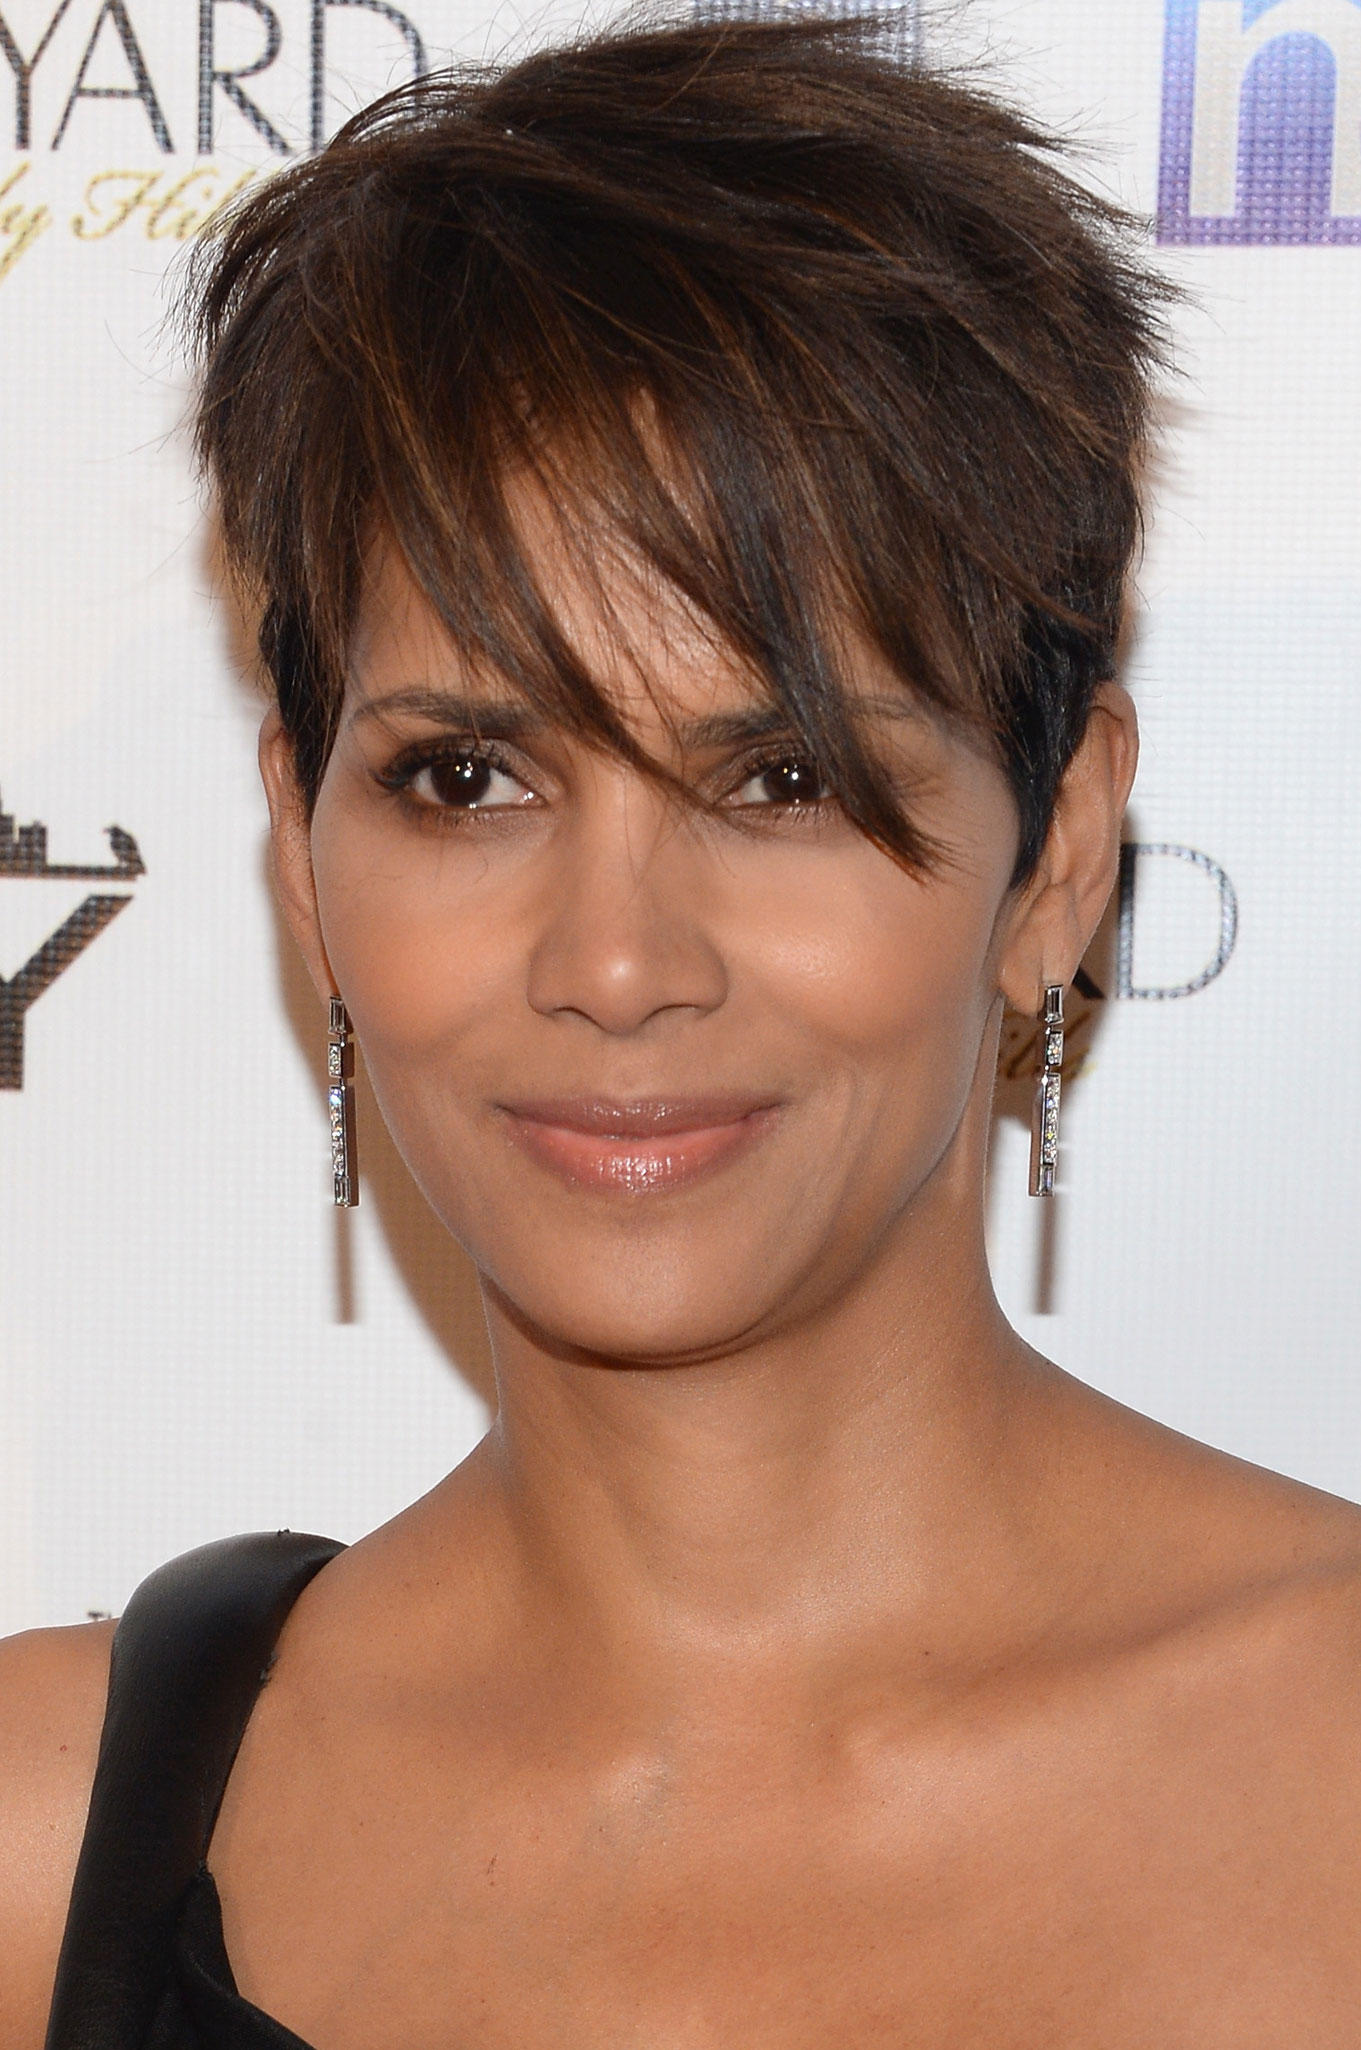 halle berry pictures and photos fandango. Black Bedroom Furniture Sets. Home Design Ideas